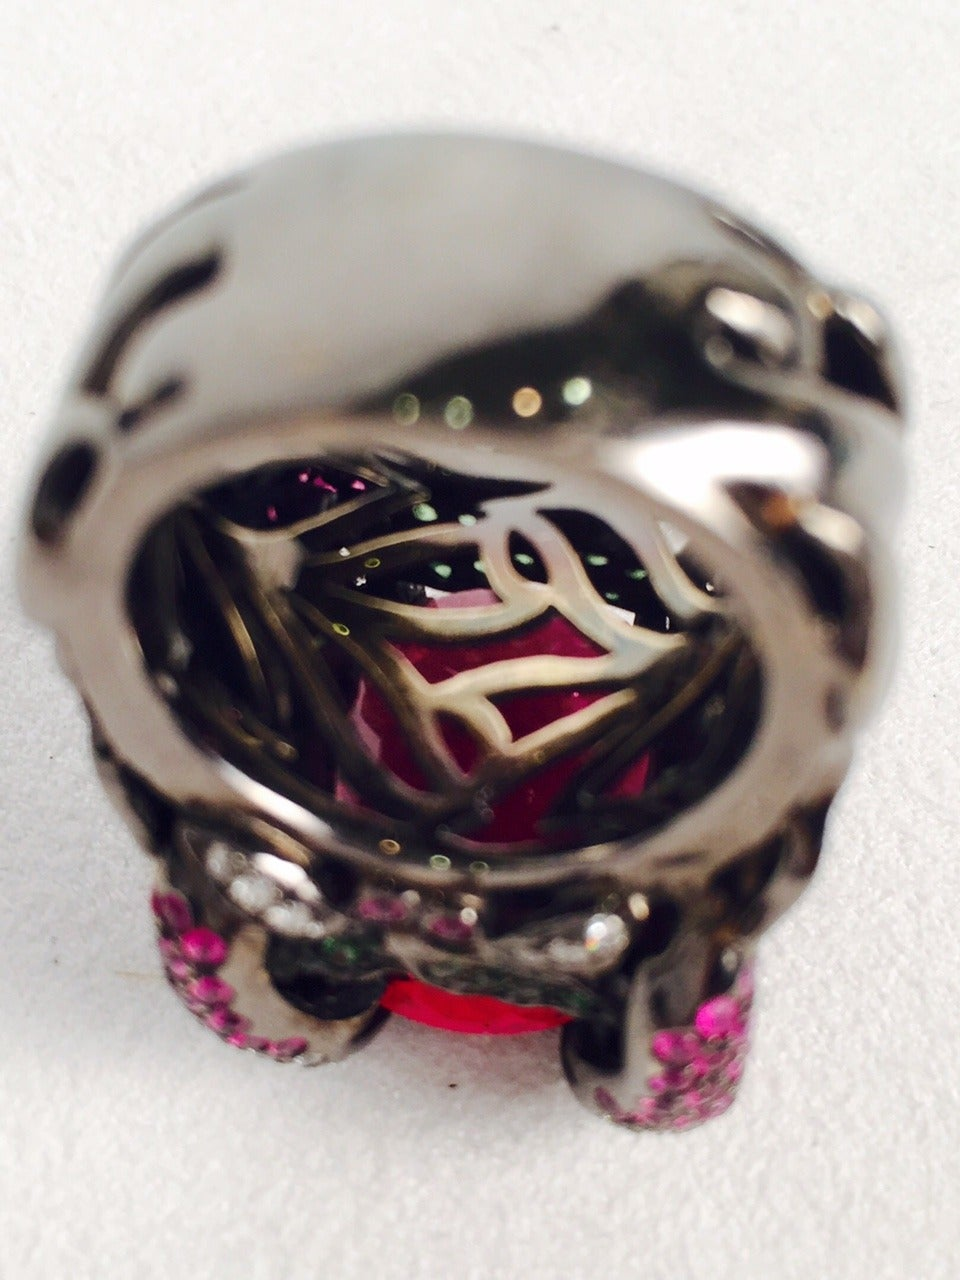 18K blackened gold featuring an oval Rubellite Tourmaline weighing approximately 15 carats, artfully held in place with 4 snake prongs sprinkled with brilliant cut diamonds weighing approximately 1.00 carat.  Sides enhanced with leaves in green